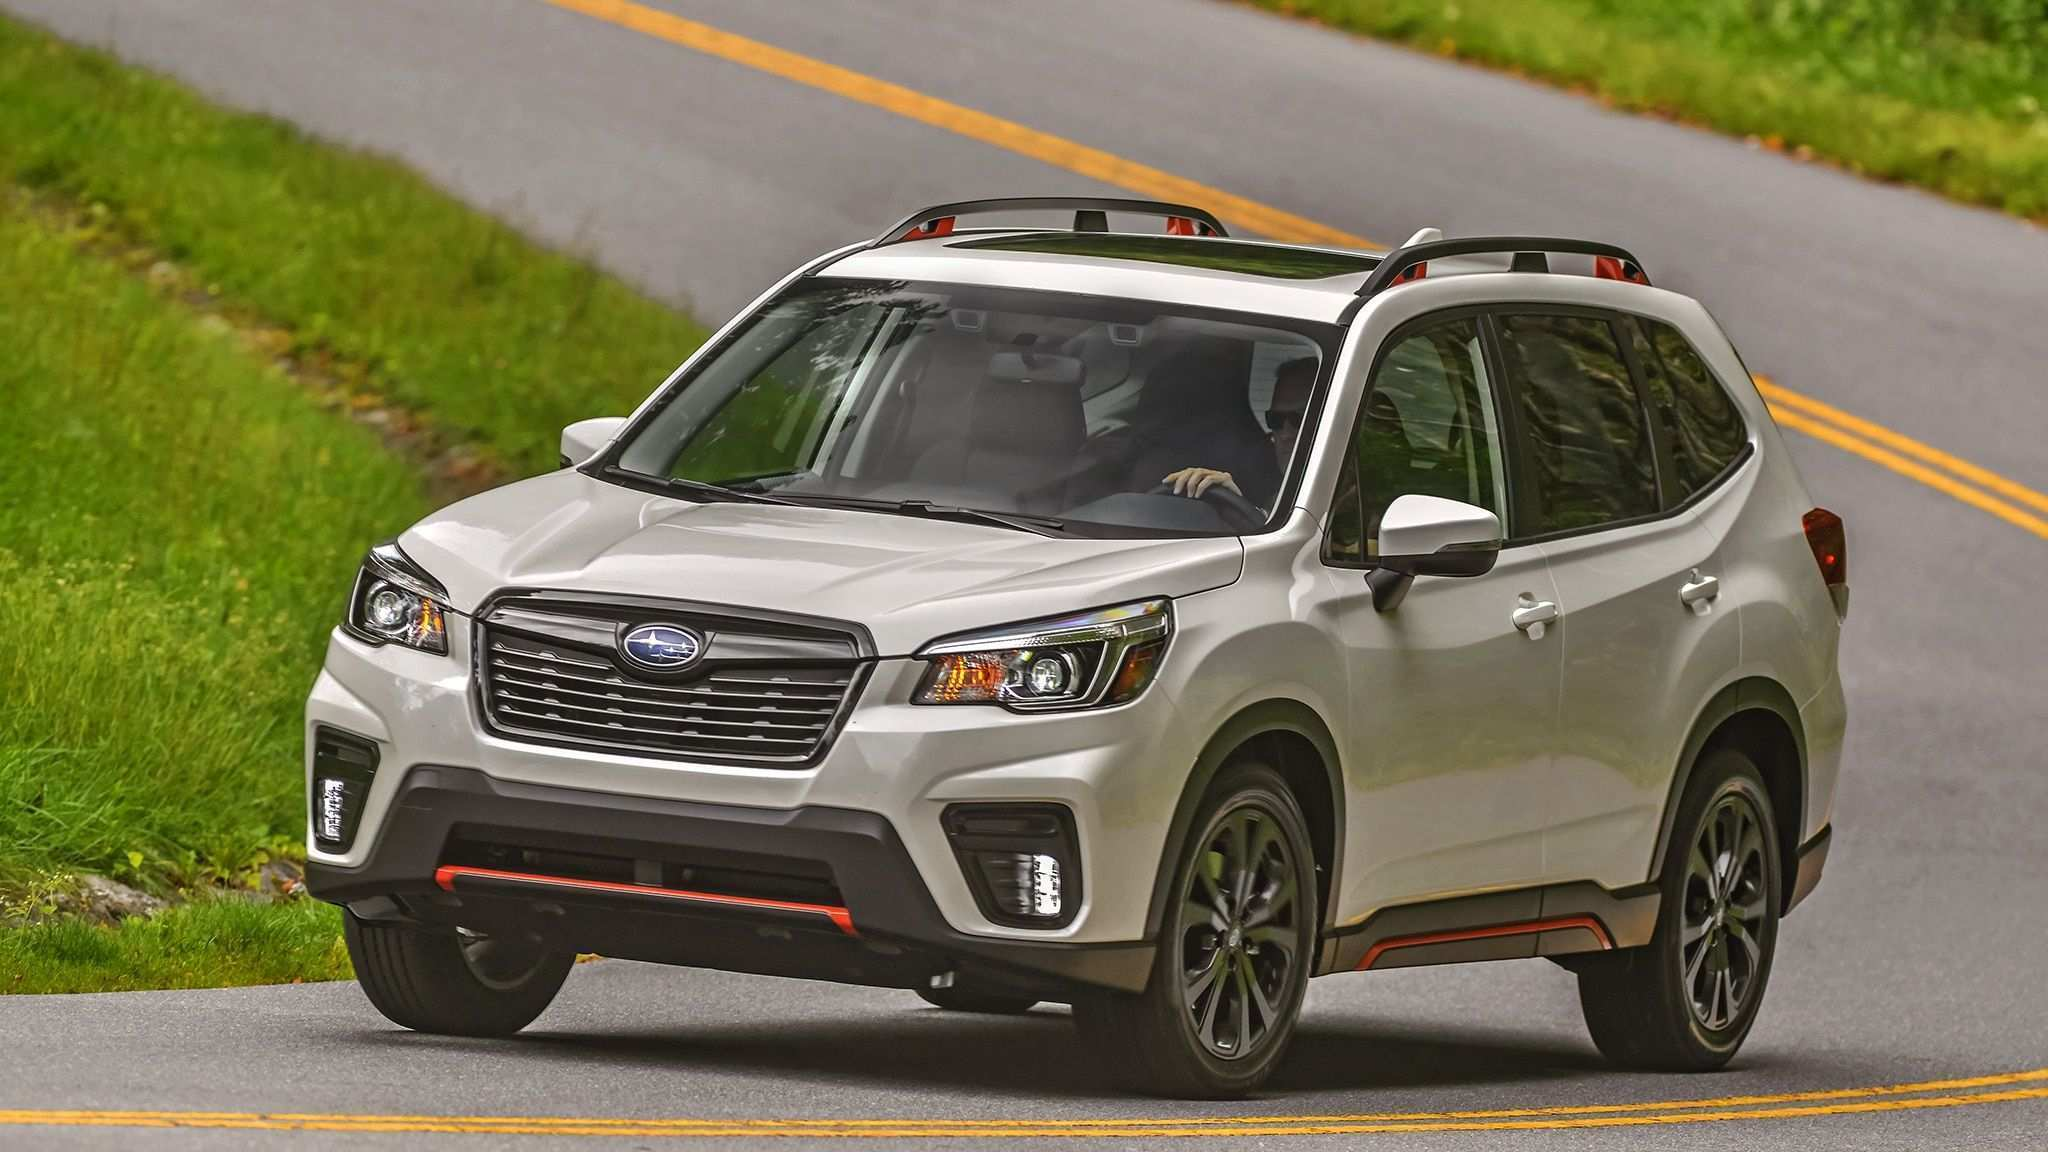 14 All New Subaru Forester 2019 Gas Mileage Spy Shoot